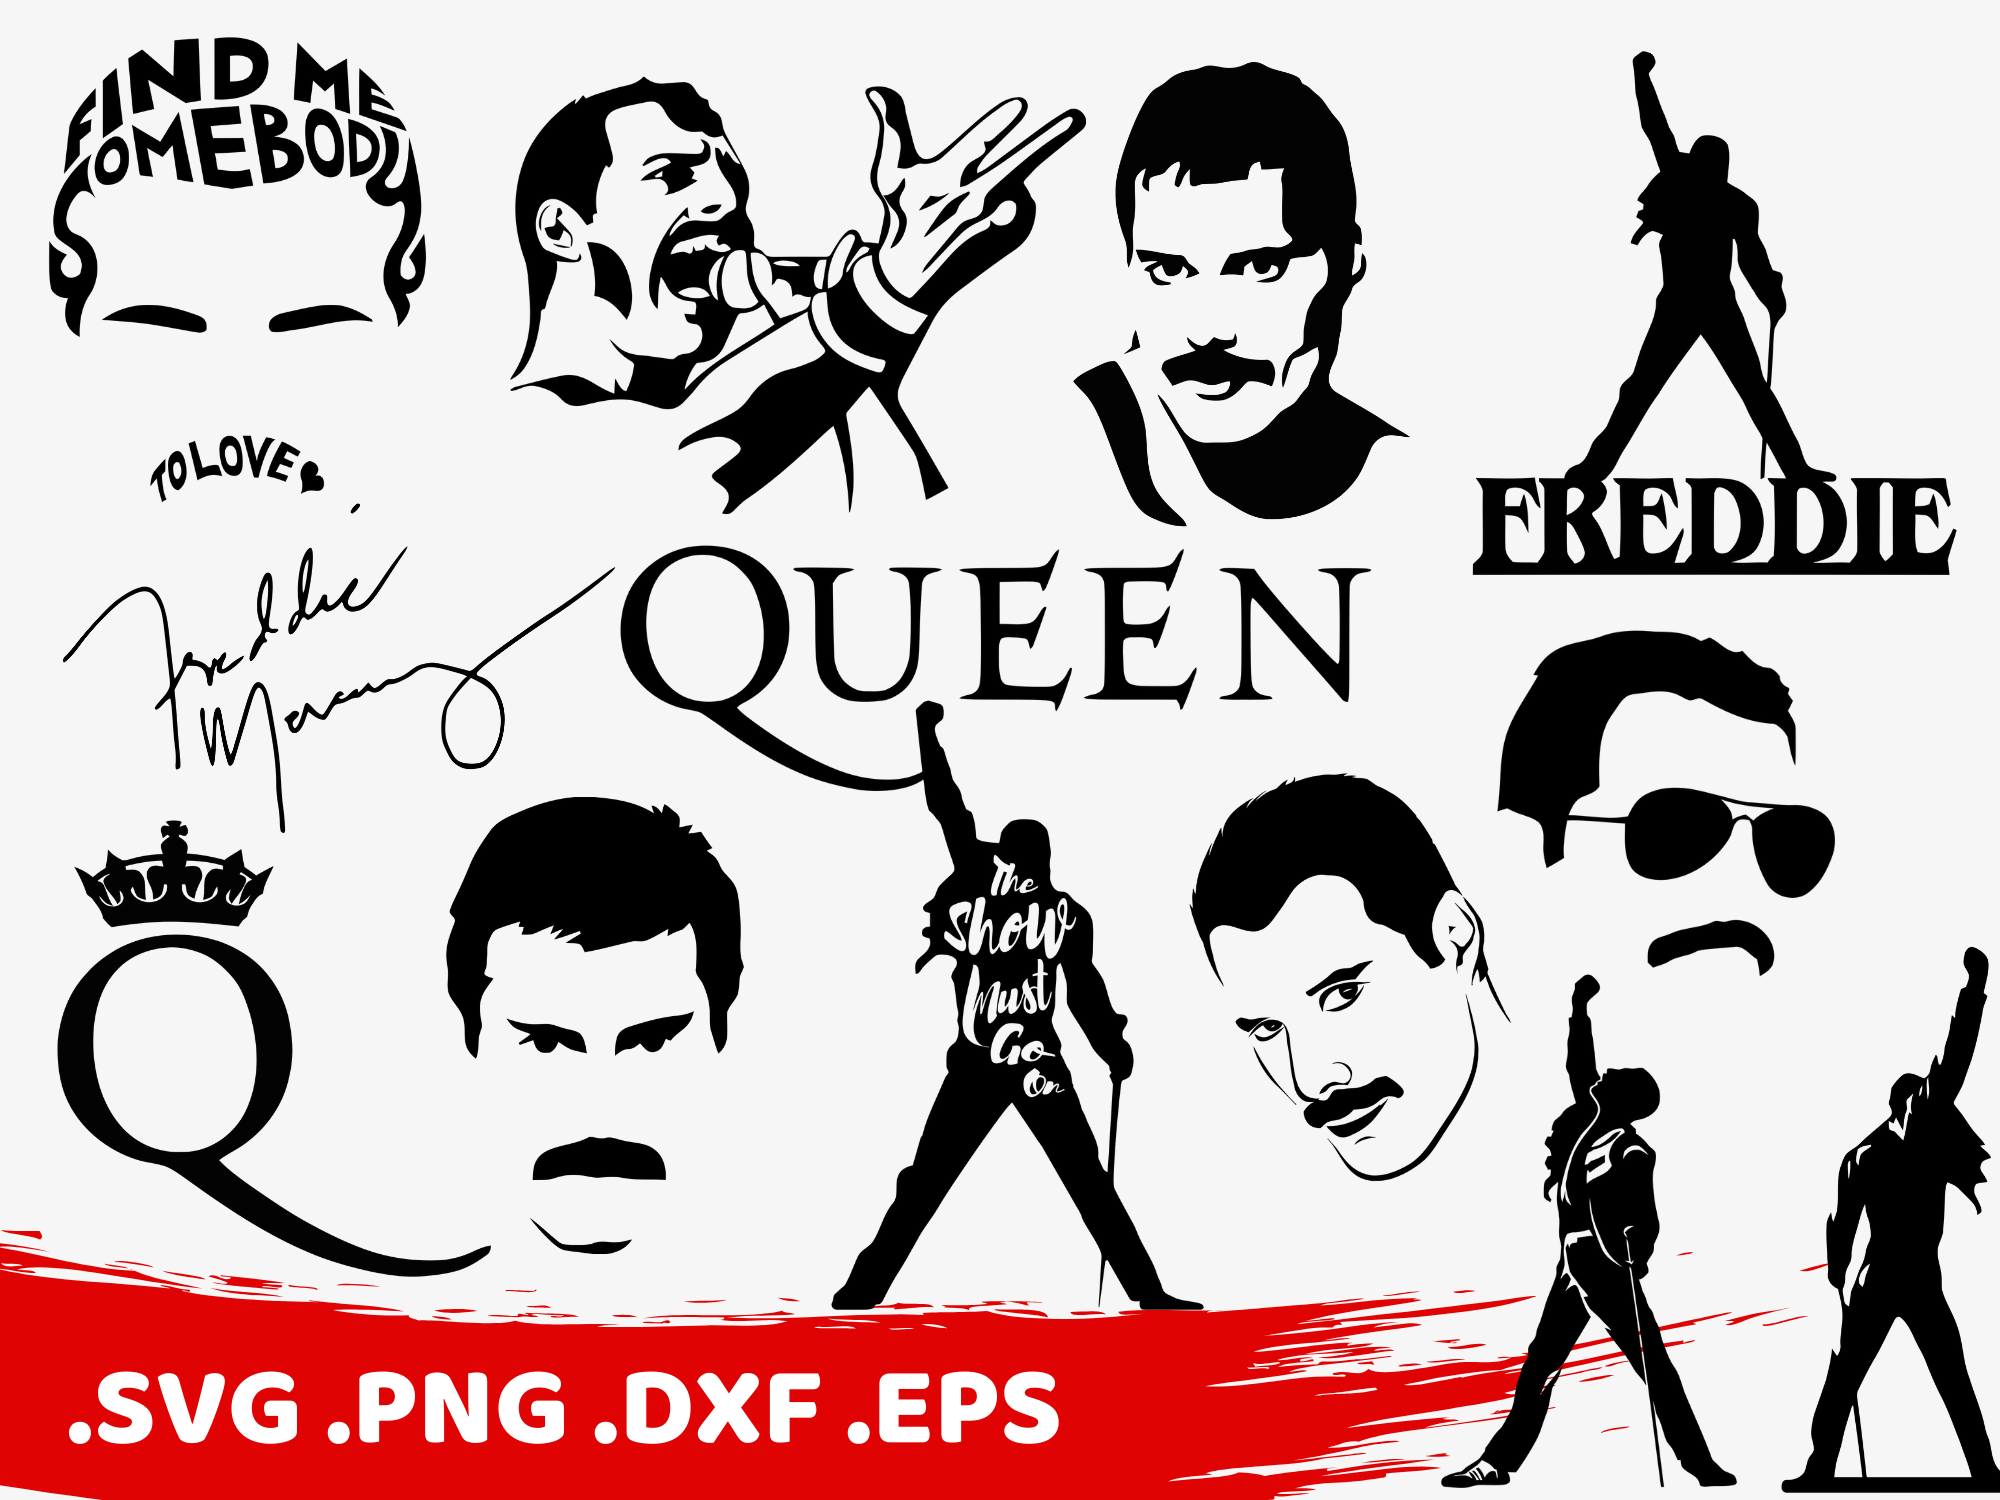 clipartshop freddie mercury svg by clipartshopcreations on zibbet clipartshop freddie mercury svg freddie silhouette queen svg queen silhouette freddie cut file freddie printable show must go on svg